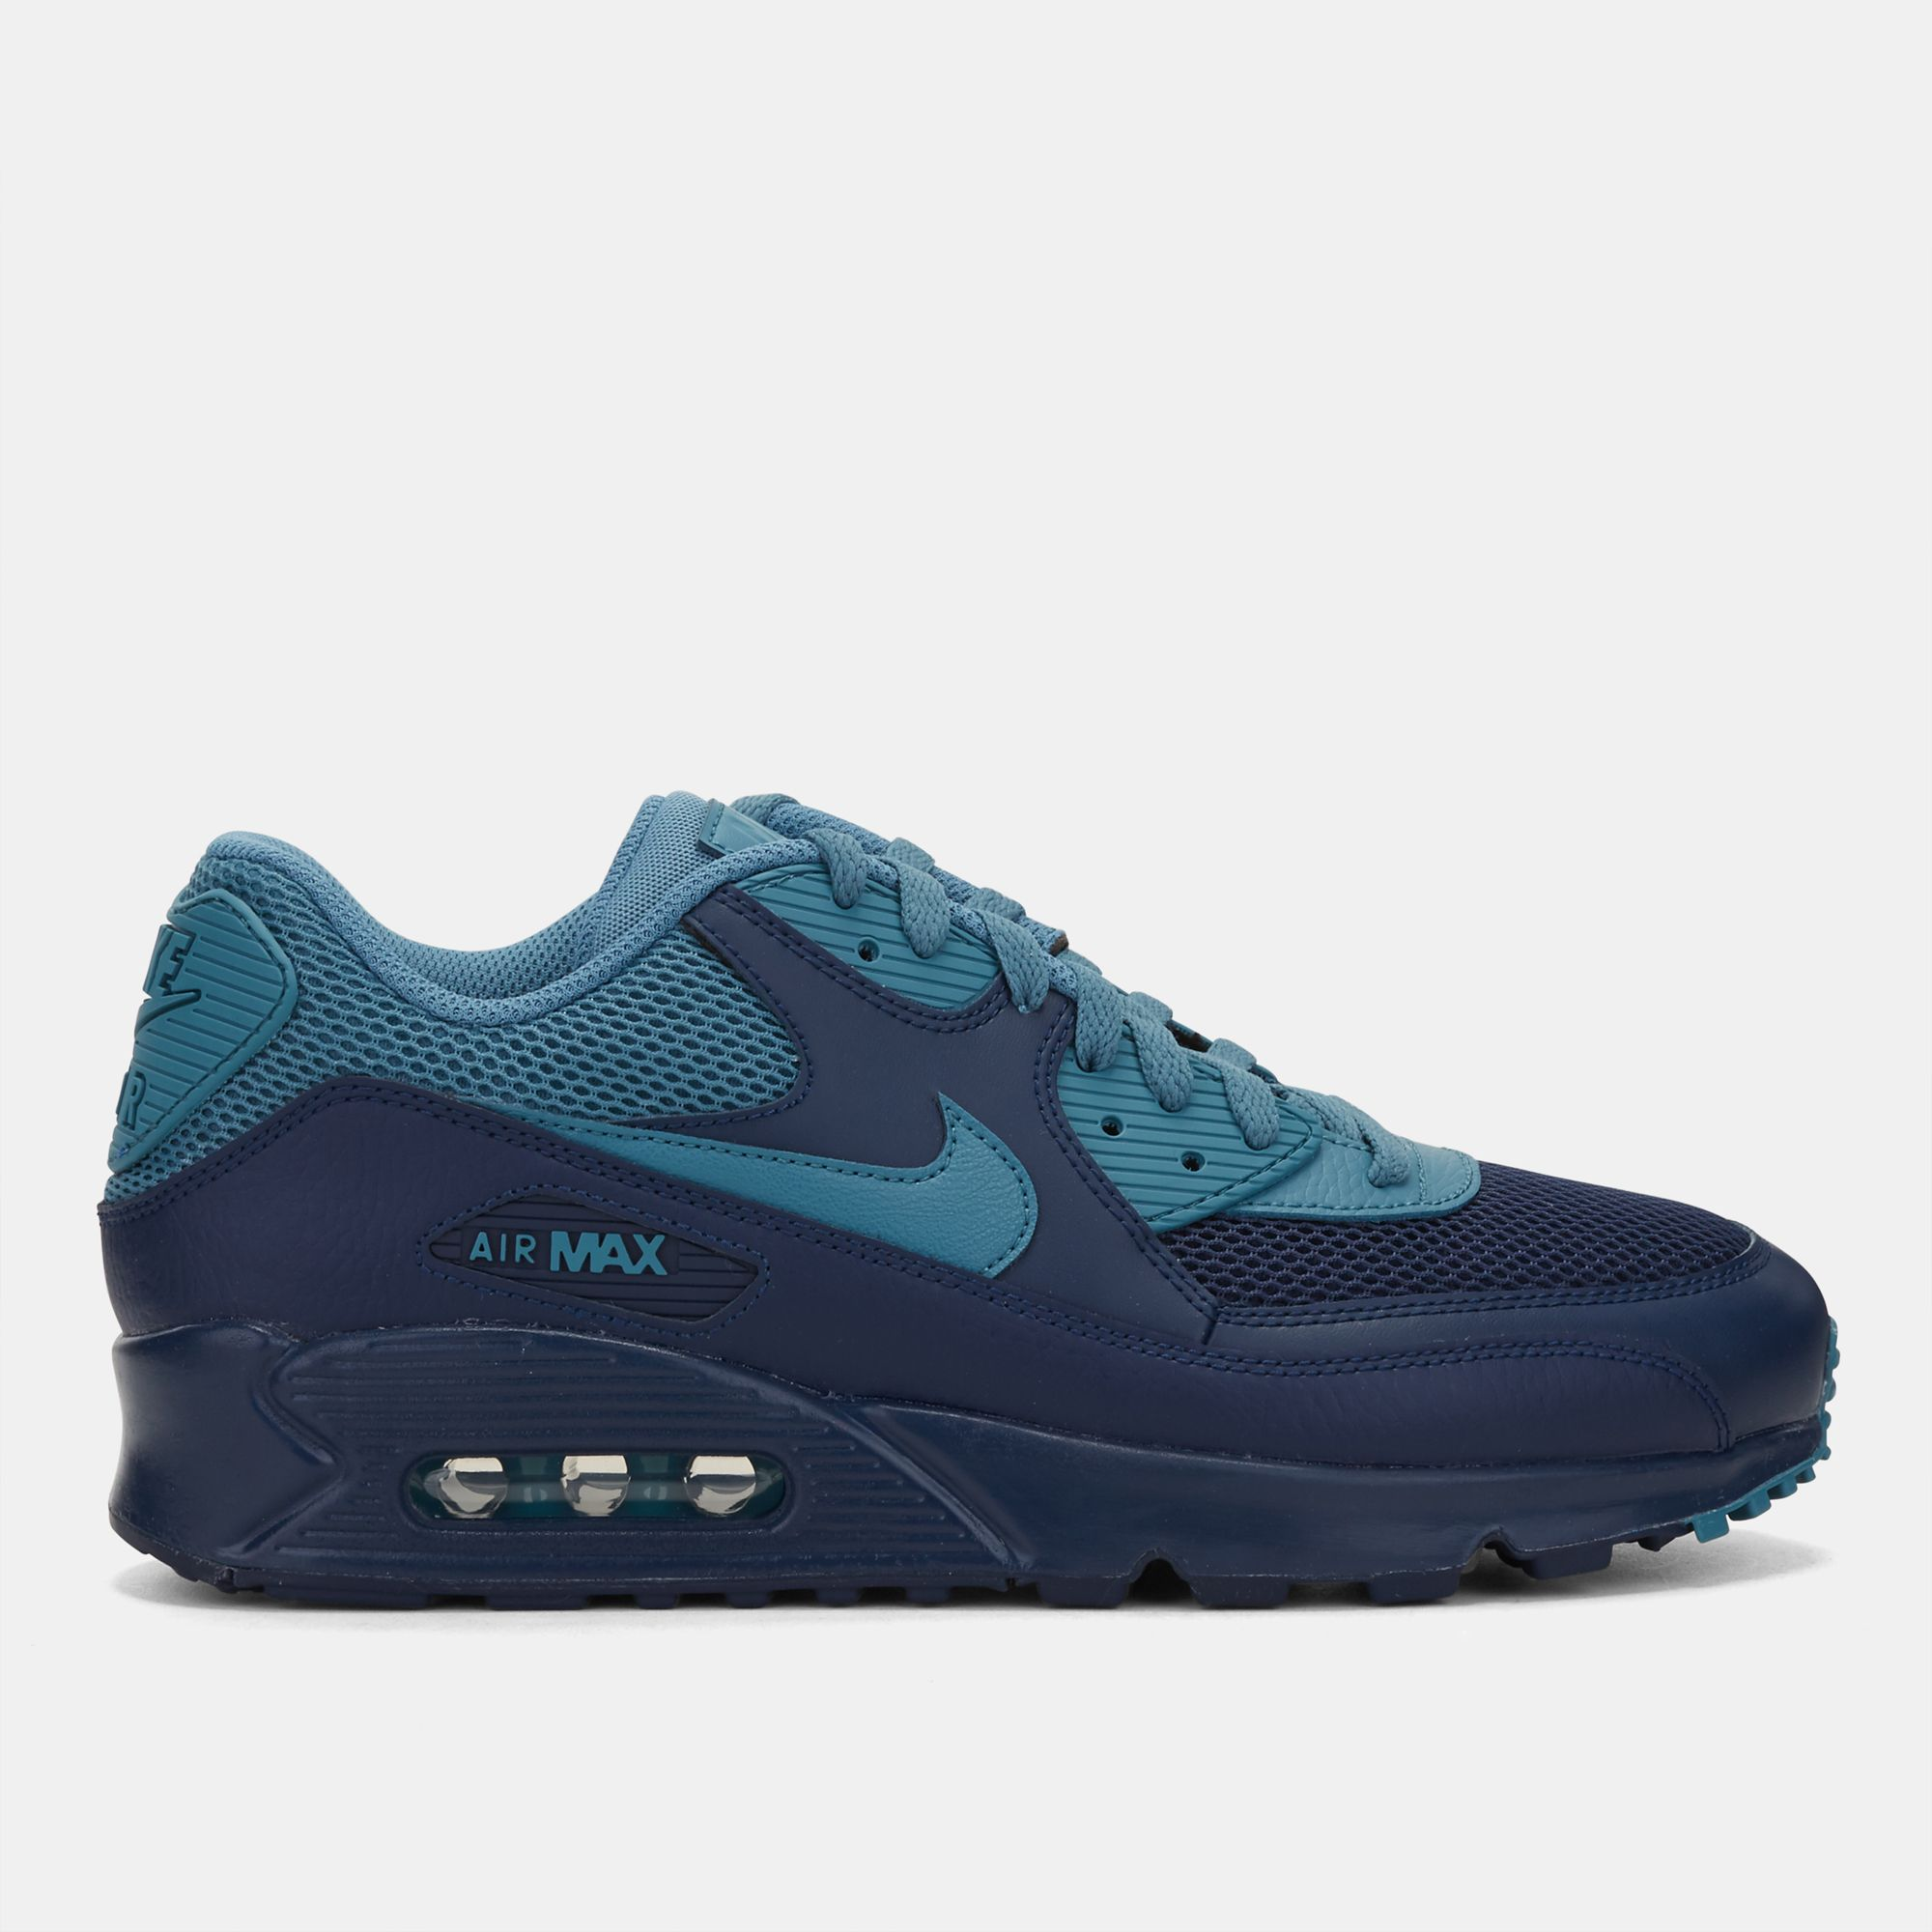 5f4b5498bdafe Shop Nike Air Max 90 Essential Shoe Nike537384 420